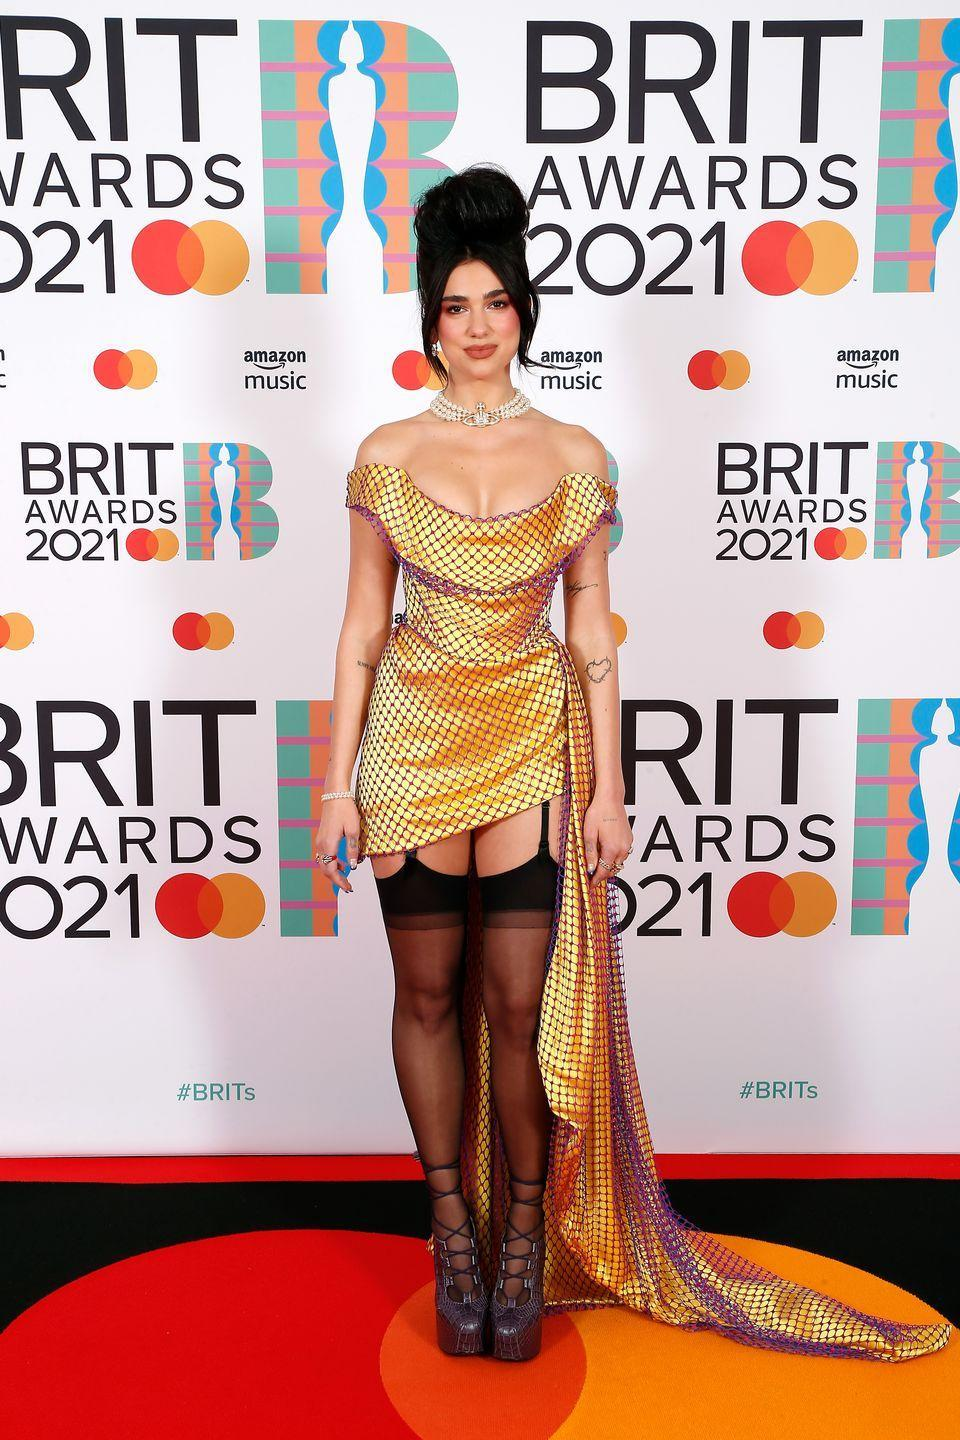 """<p><strong>What: </strong>Vivienne Westwood Couture <strong><br></strong></p><p><strong>Why: </strong>In true Dua Lipa fashion, the singer wore a camp-inspired corseted look on the red carpet from <a href=""""https://www.harpersbazaar.com/celebrity/latest/a36397696/dua-lipa-vivienne-westwood-brit-awards-look/"""" rel=""""nofollow noopener"""" target=""""_blank"""" data-ylk=""""slk:Vivienne Westwood couture"""" class=""""link rapid-noclick-resp"""">Vivienne Westwood couture</a> that was channeling Marie Antoinette in the modern day. Between the stocking garters, platform lace-up booties, and rounded bouffant hairdo to match, Lipa's look was right on the nose.</p>"""